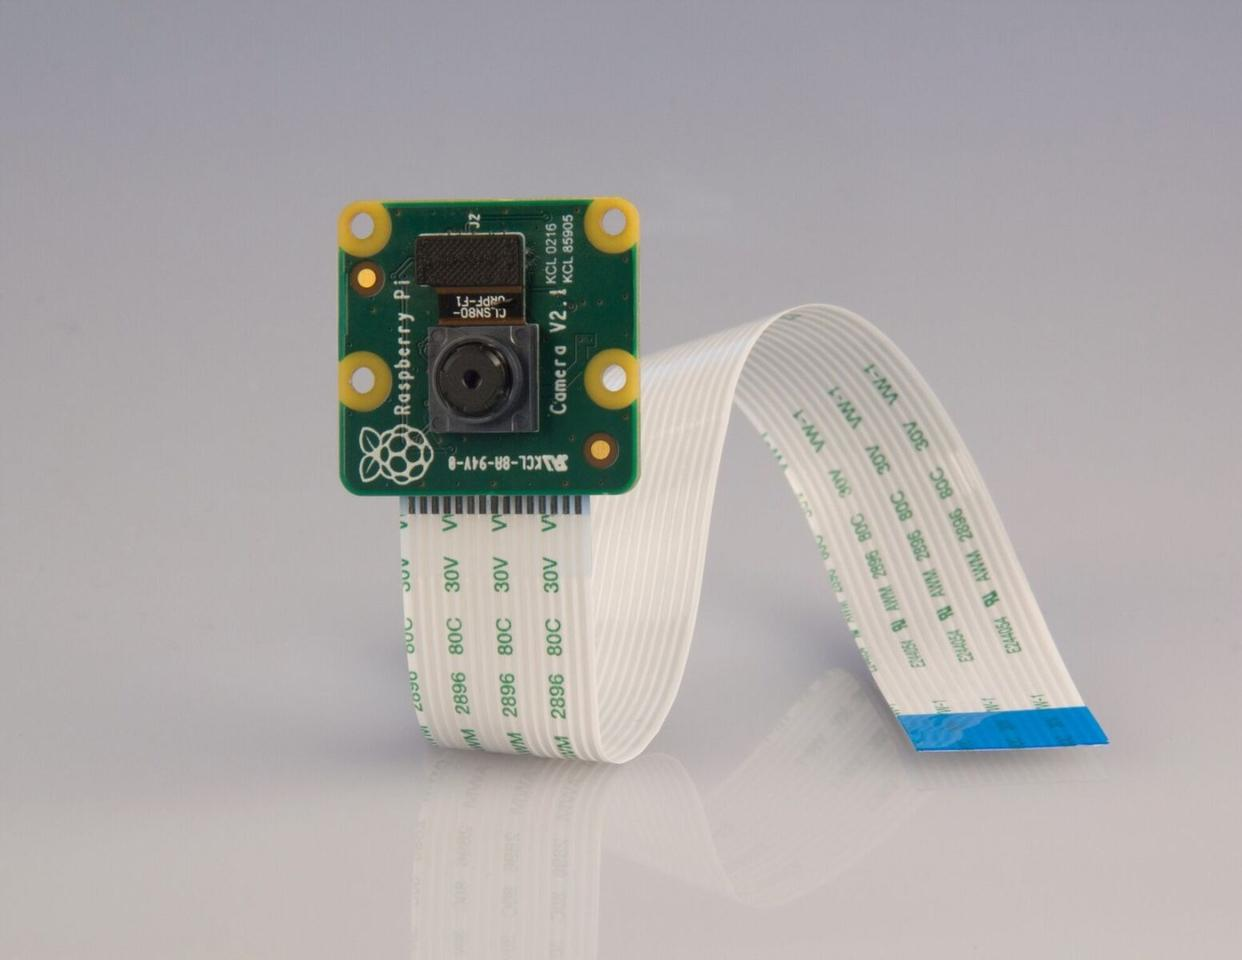 The new camera module for the Raspberry Pi computer boards is based around Sony's back-illuminated IMX219 CMOS sensor